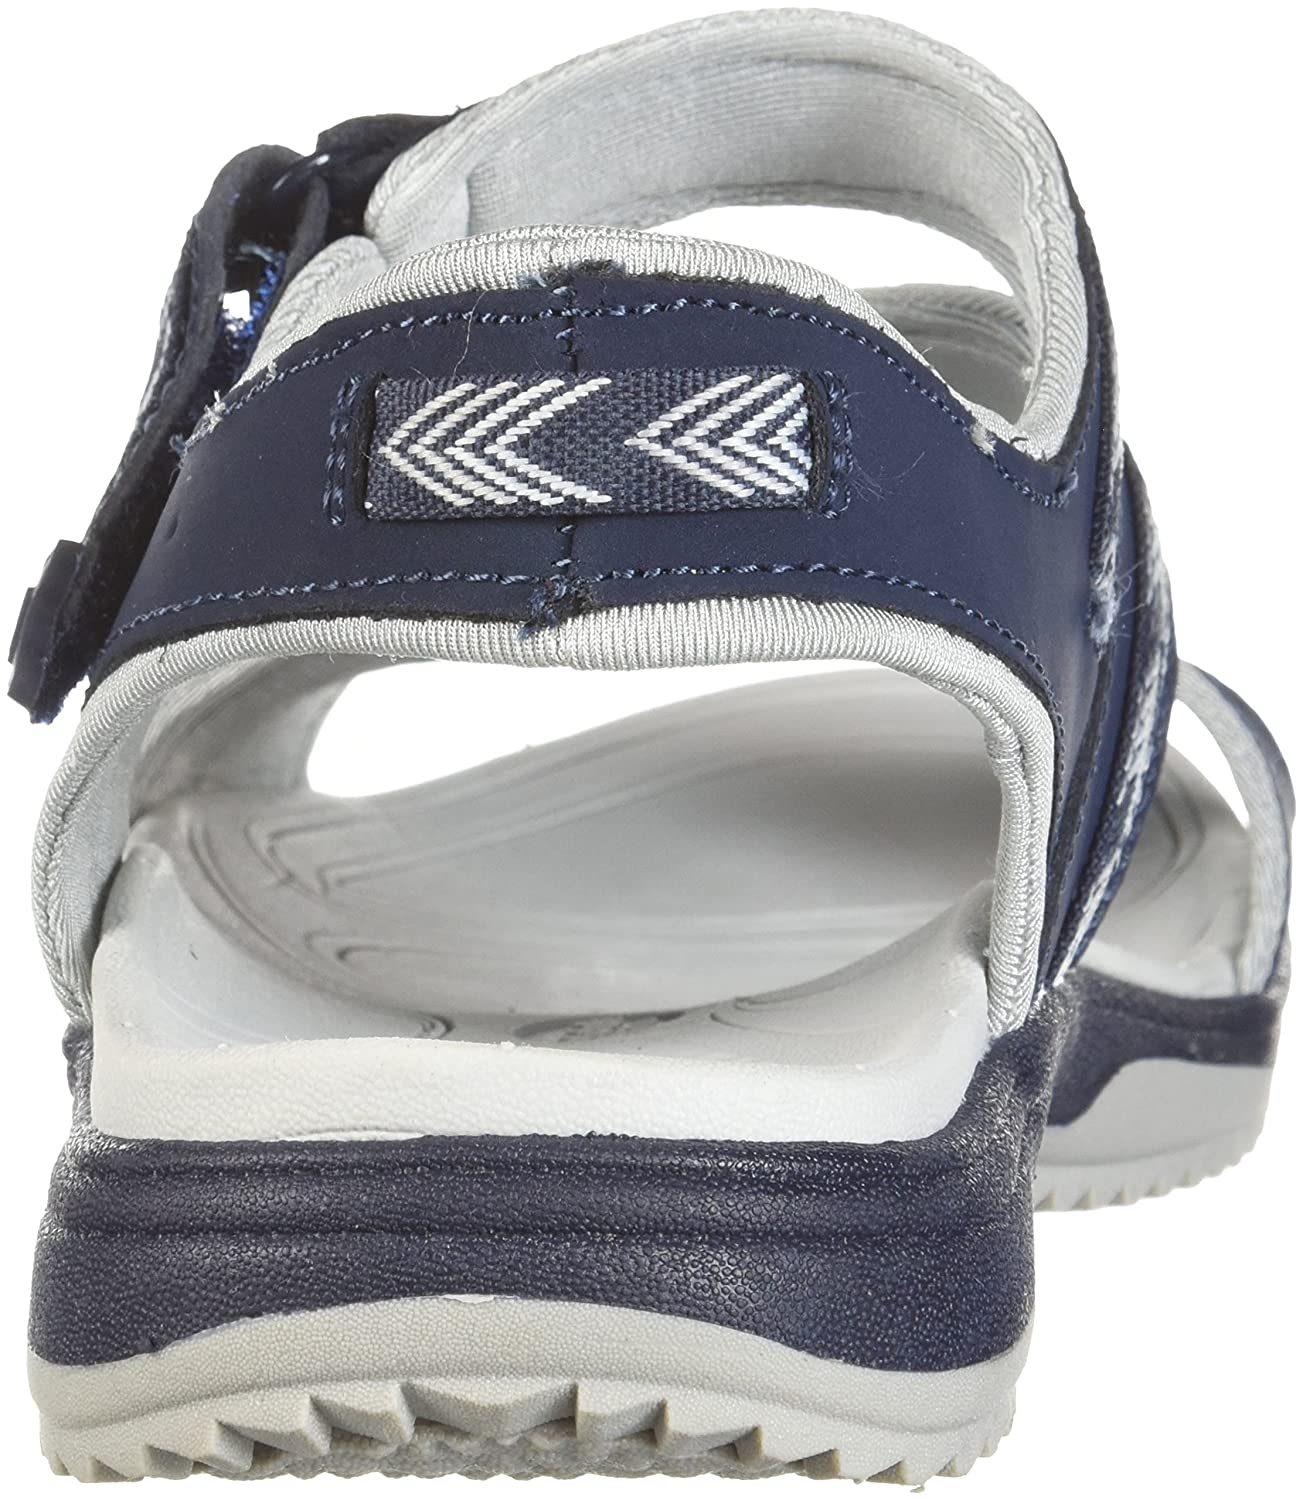 Dr. Scholl's Sandal Shoes Women's Daydream Slide Sandal Scholl's B0767T3Y12 7.5 B(M) US|Navy Action Leather bdc9ab